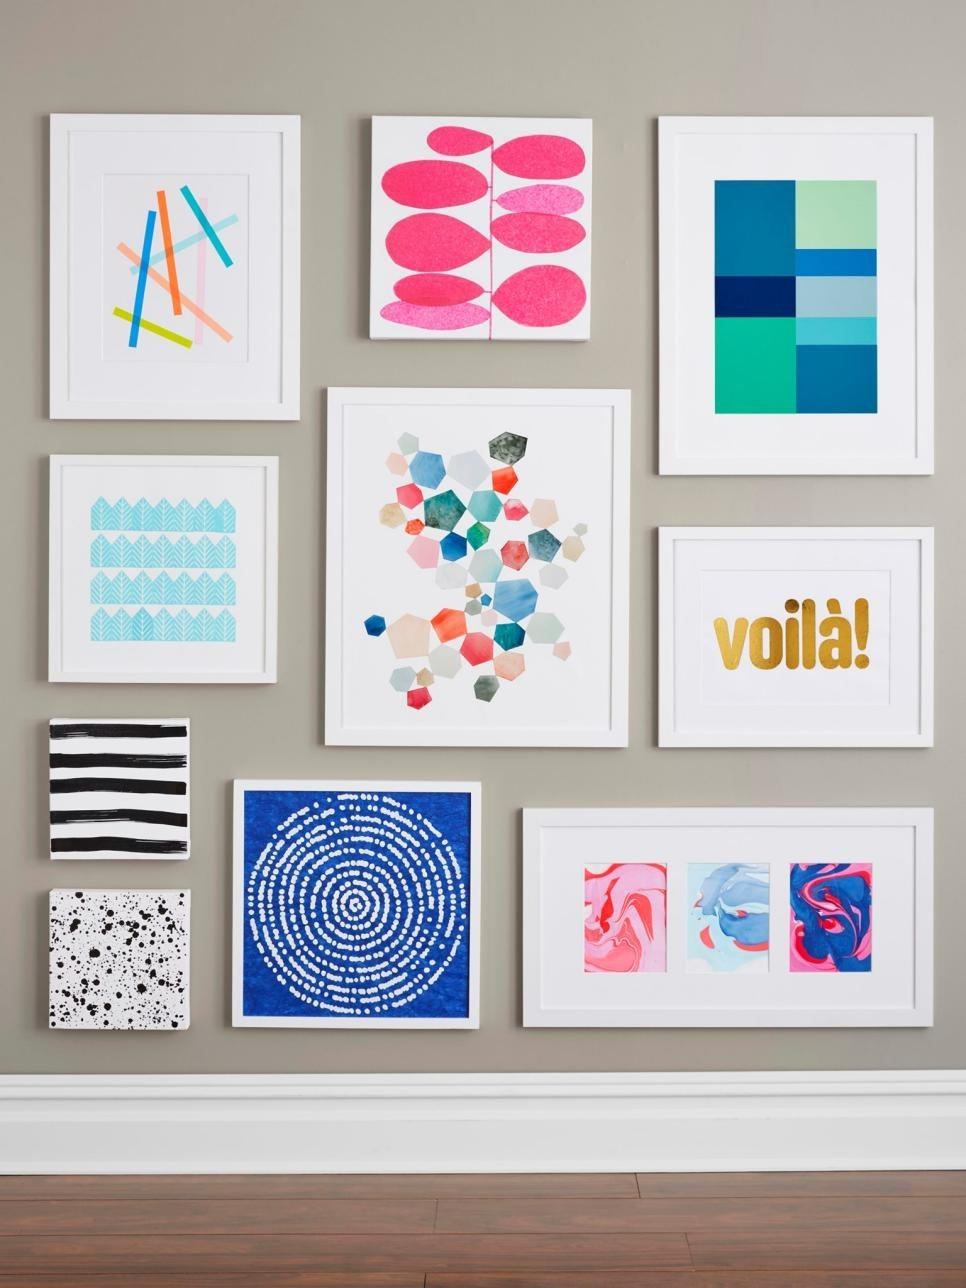 Diy Wall Art Diy Wall Art Projects Anyone Can Do Hgtv | Fall Home Decor With Regard To Most Current Wall Art Diy (View 3 of 20)